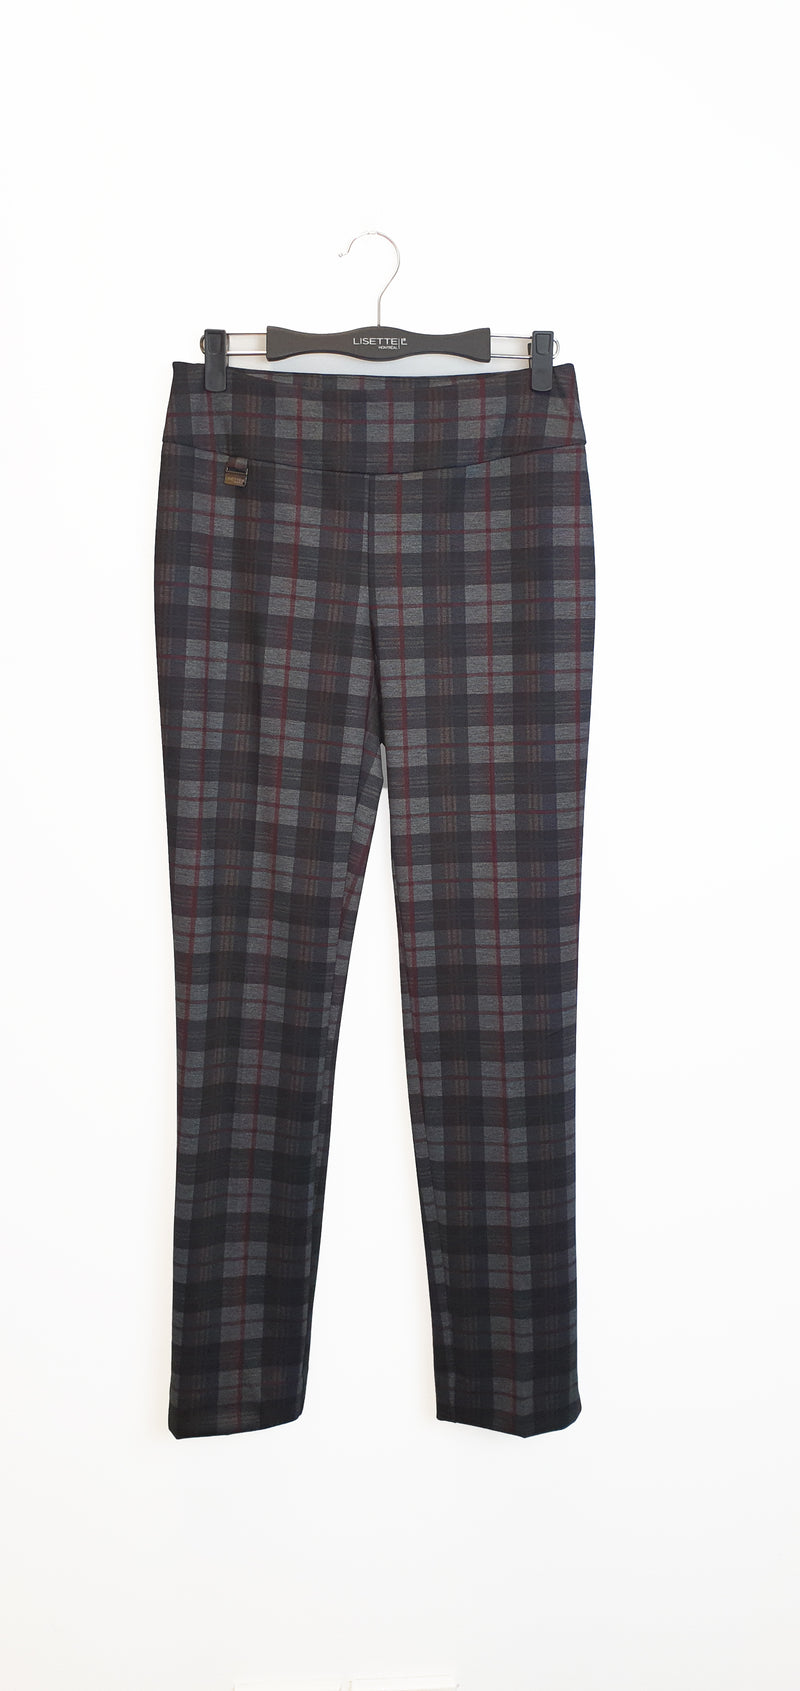 44505 Slim SCOTTISH PLAID PRINT -  - Pants - Lisette L Montreal Australia - The Rarity Group